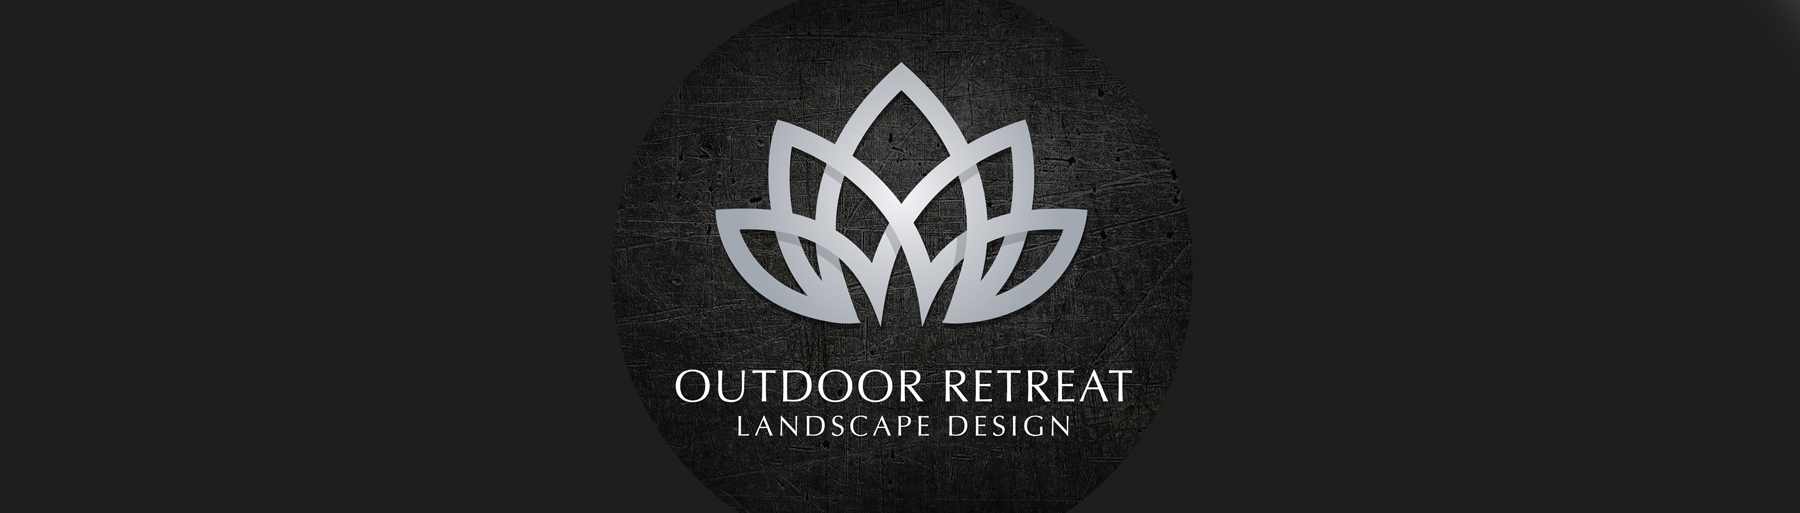 Outdoor Retreat Landscape Design Logo on black